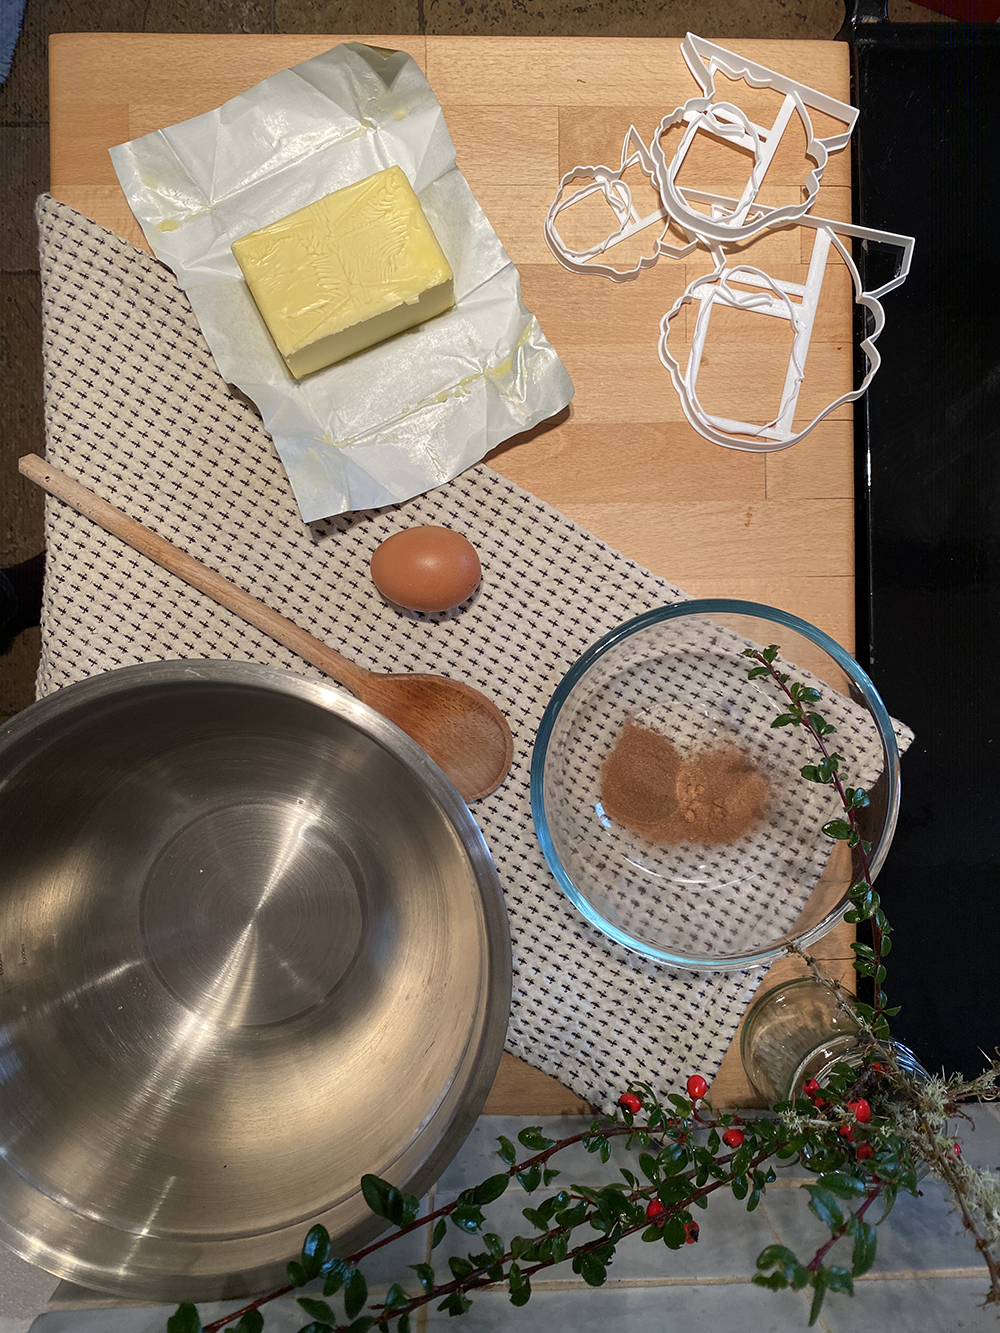 Baking ingredients, including butter, eggs, and sugar, lay on a kitchen counter,